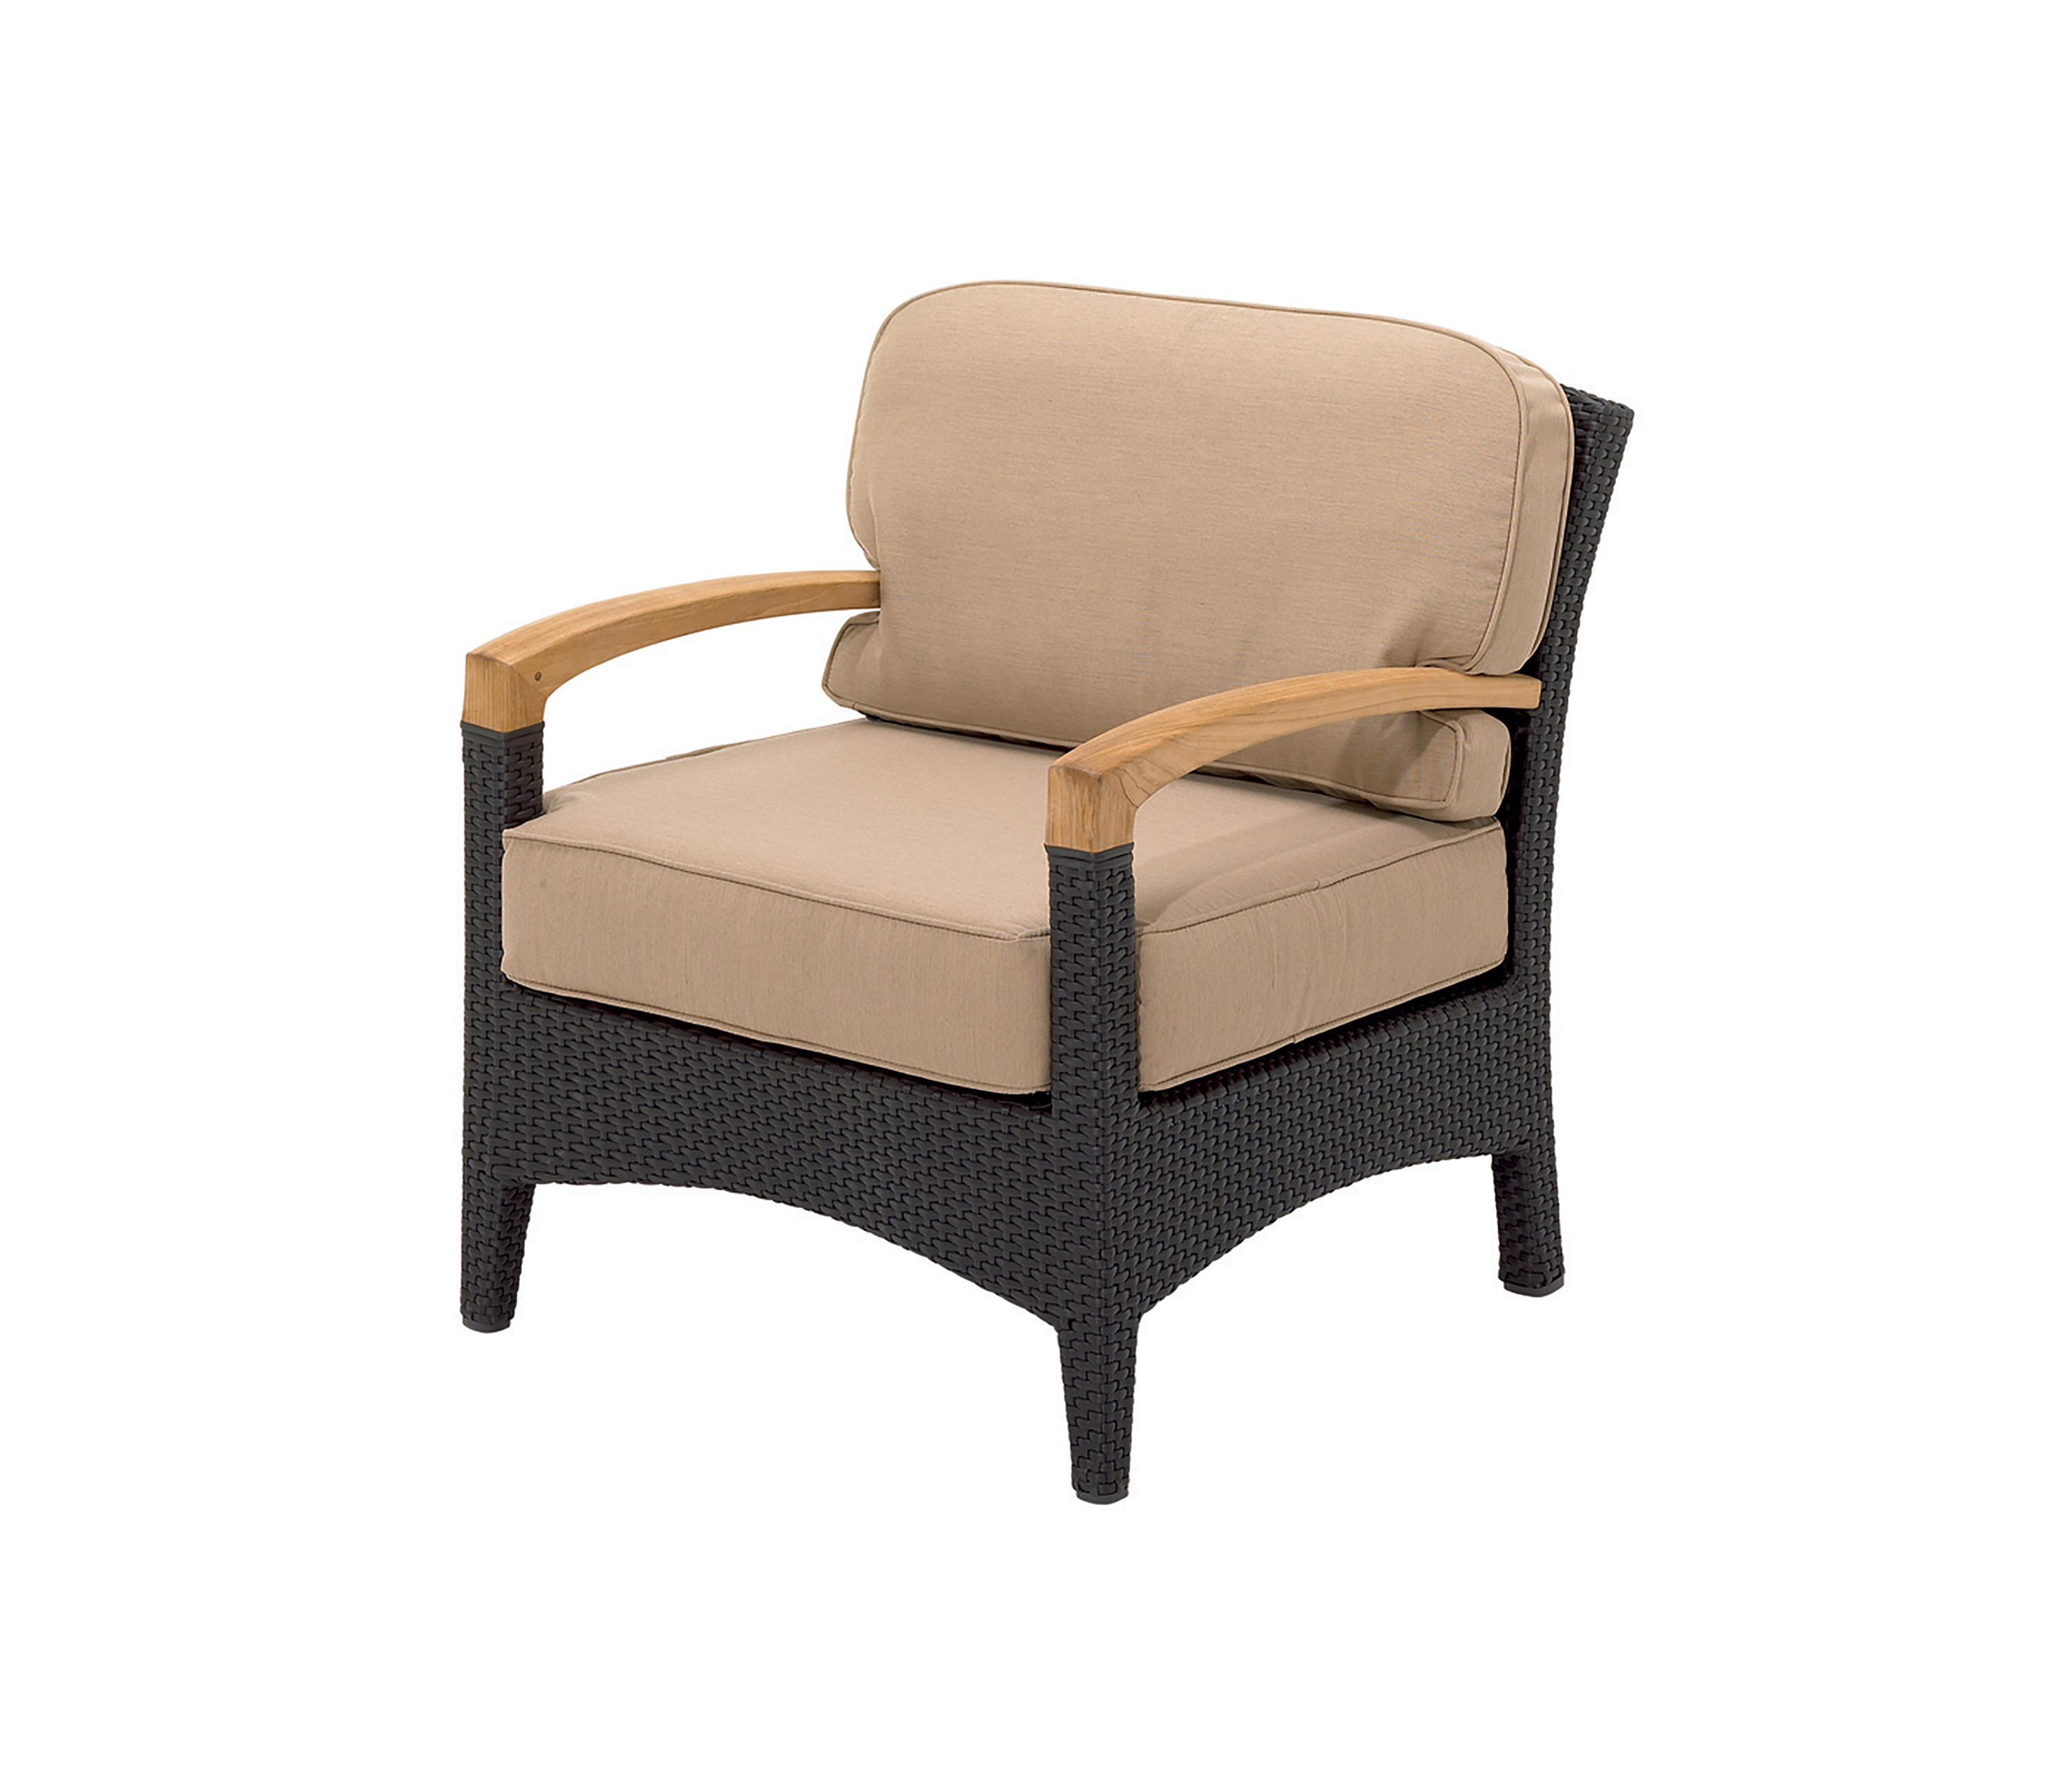 PLANTATION DEEP SEATING ARMCHAIR Garden armchairs from